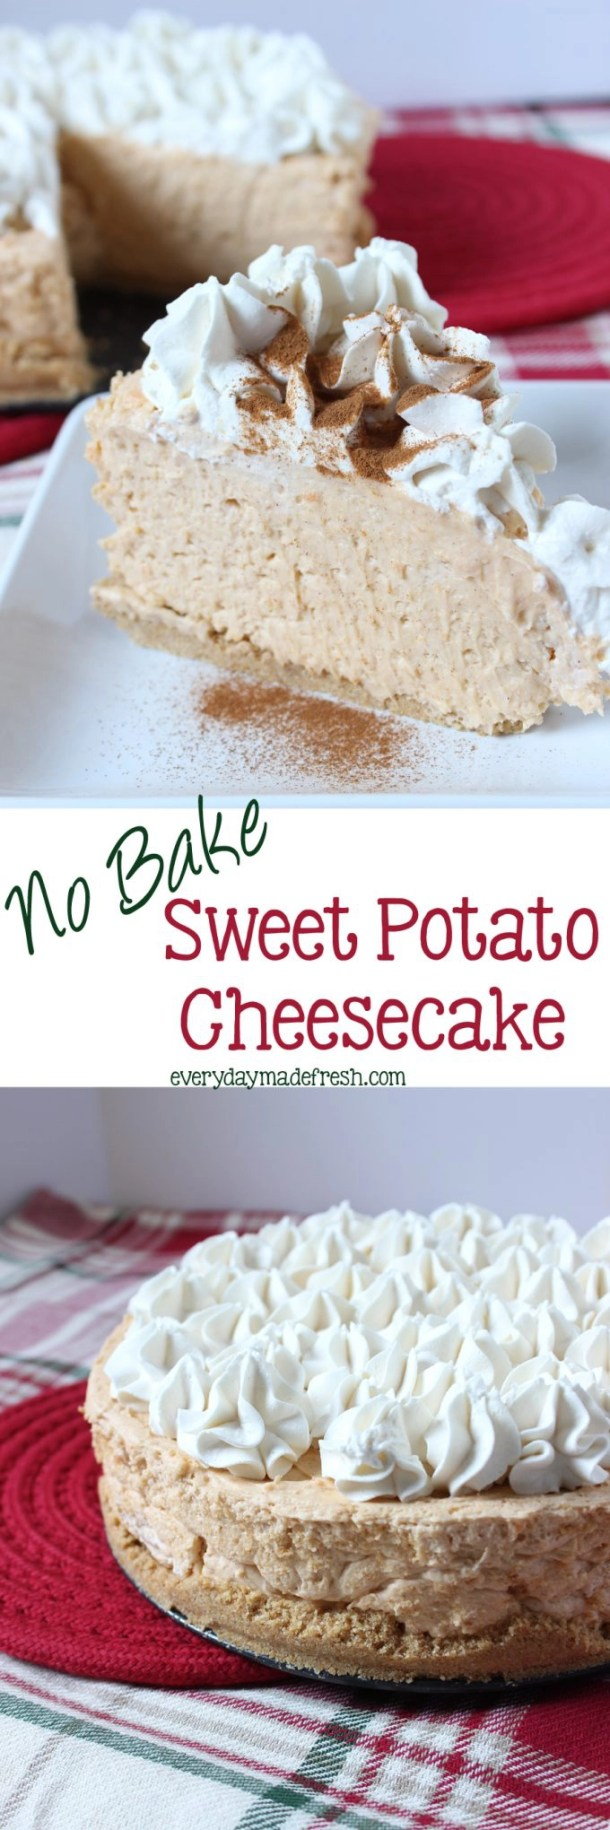 No Bake Sweet Potato Cheesecake - This Cheesecake is so easy, creamy, and decadent! You'd never know it was a no bake cheesecake. #BigLotsHoliday #ad | EverydayMadeFresh.com